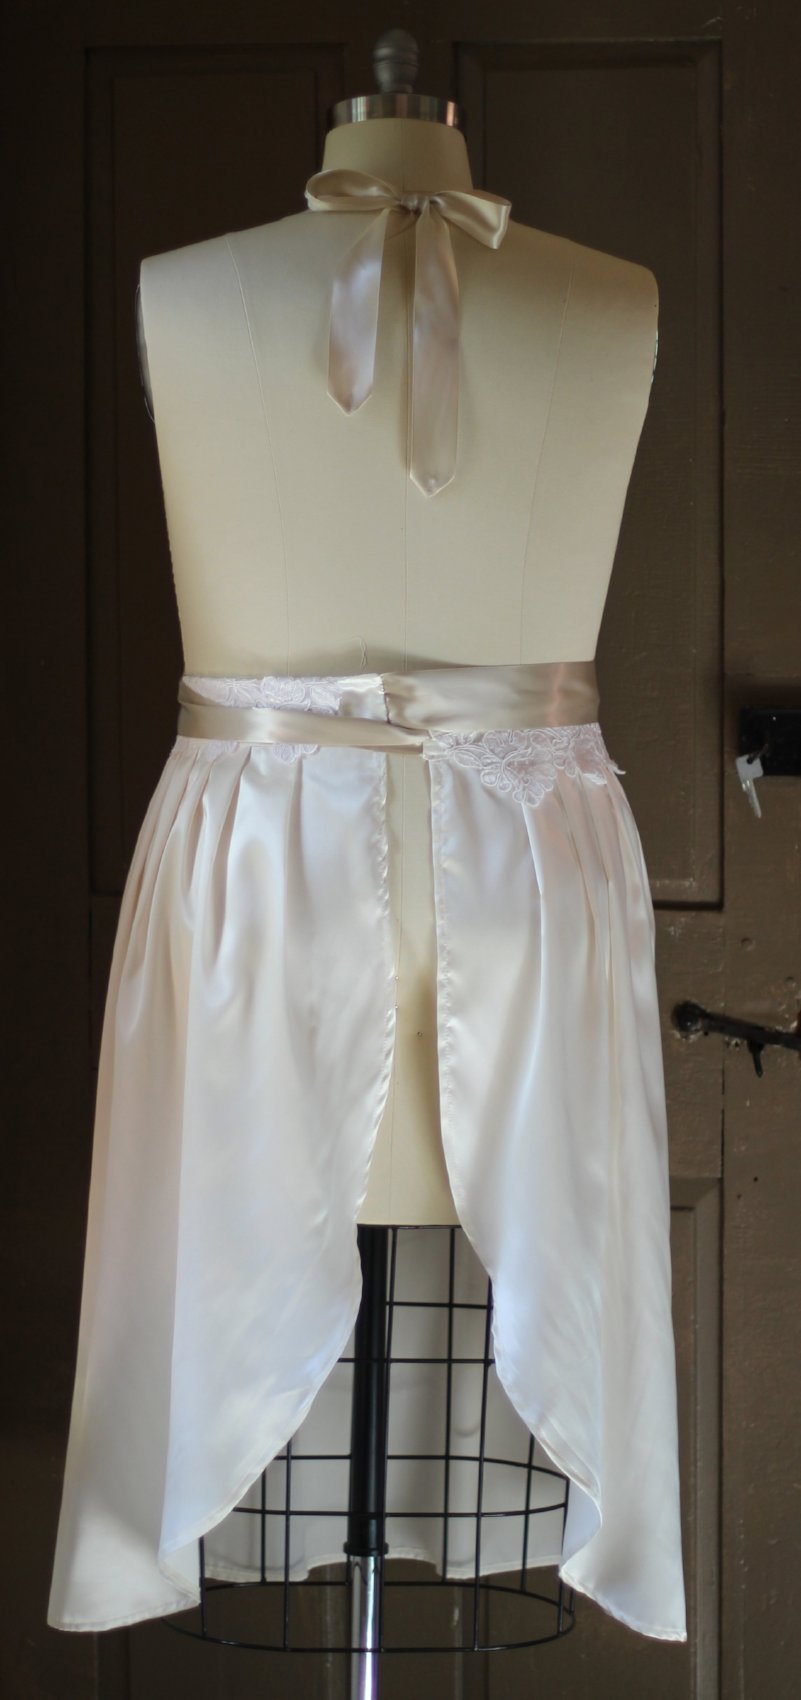 S-5X Satin Bridal Apron with Quilted Lace Bib